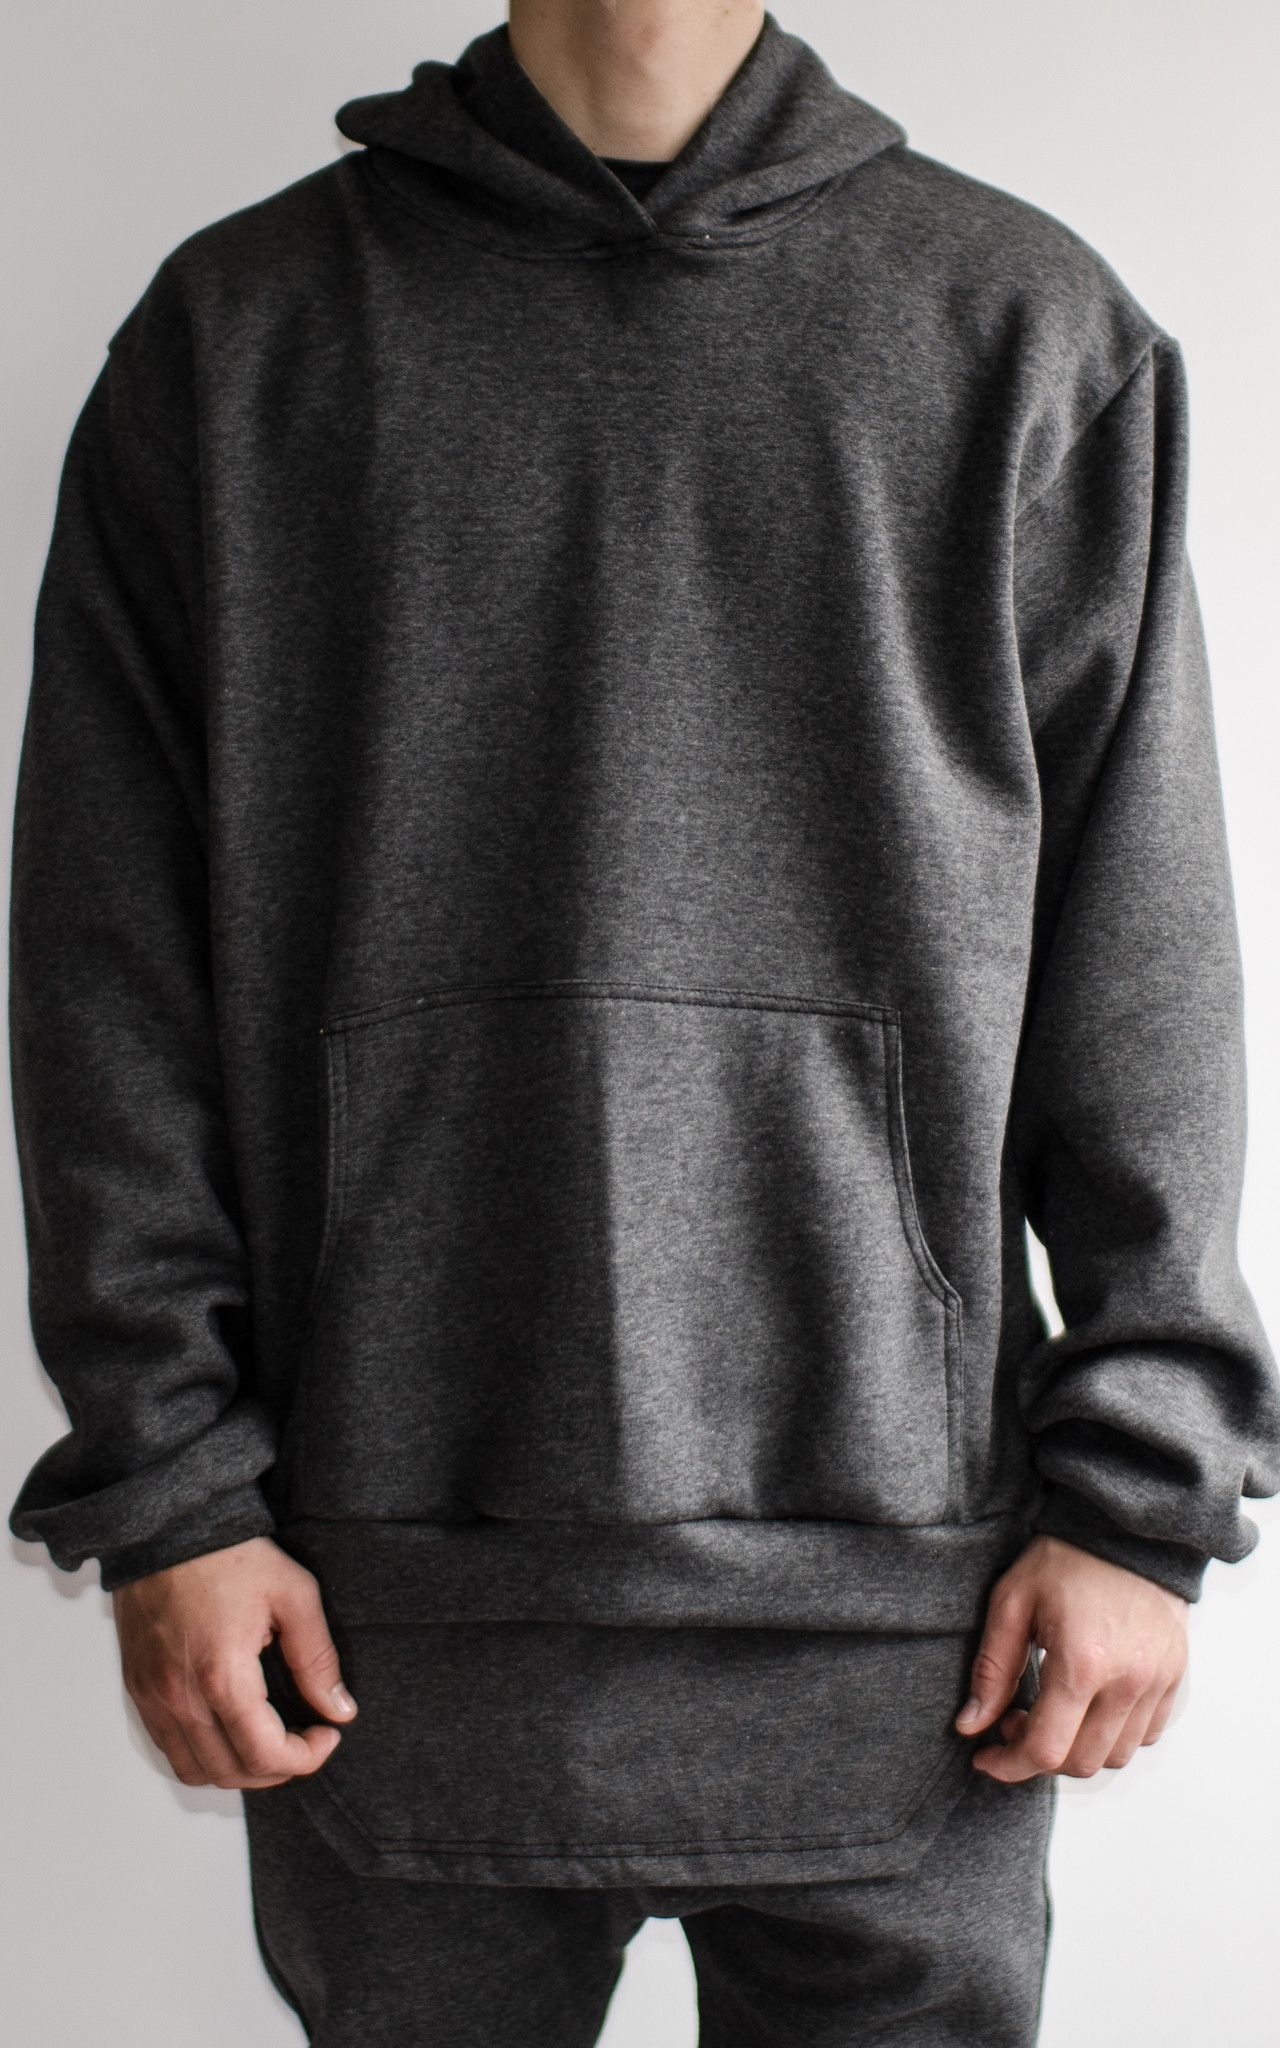 DARK GREY PULLOVER HOODIE The epitome of comfort, the Flannel ...